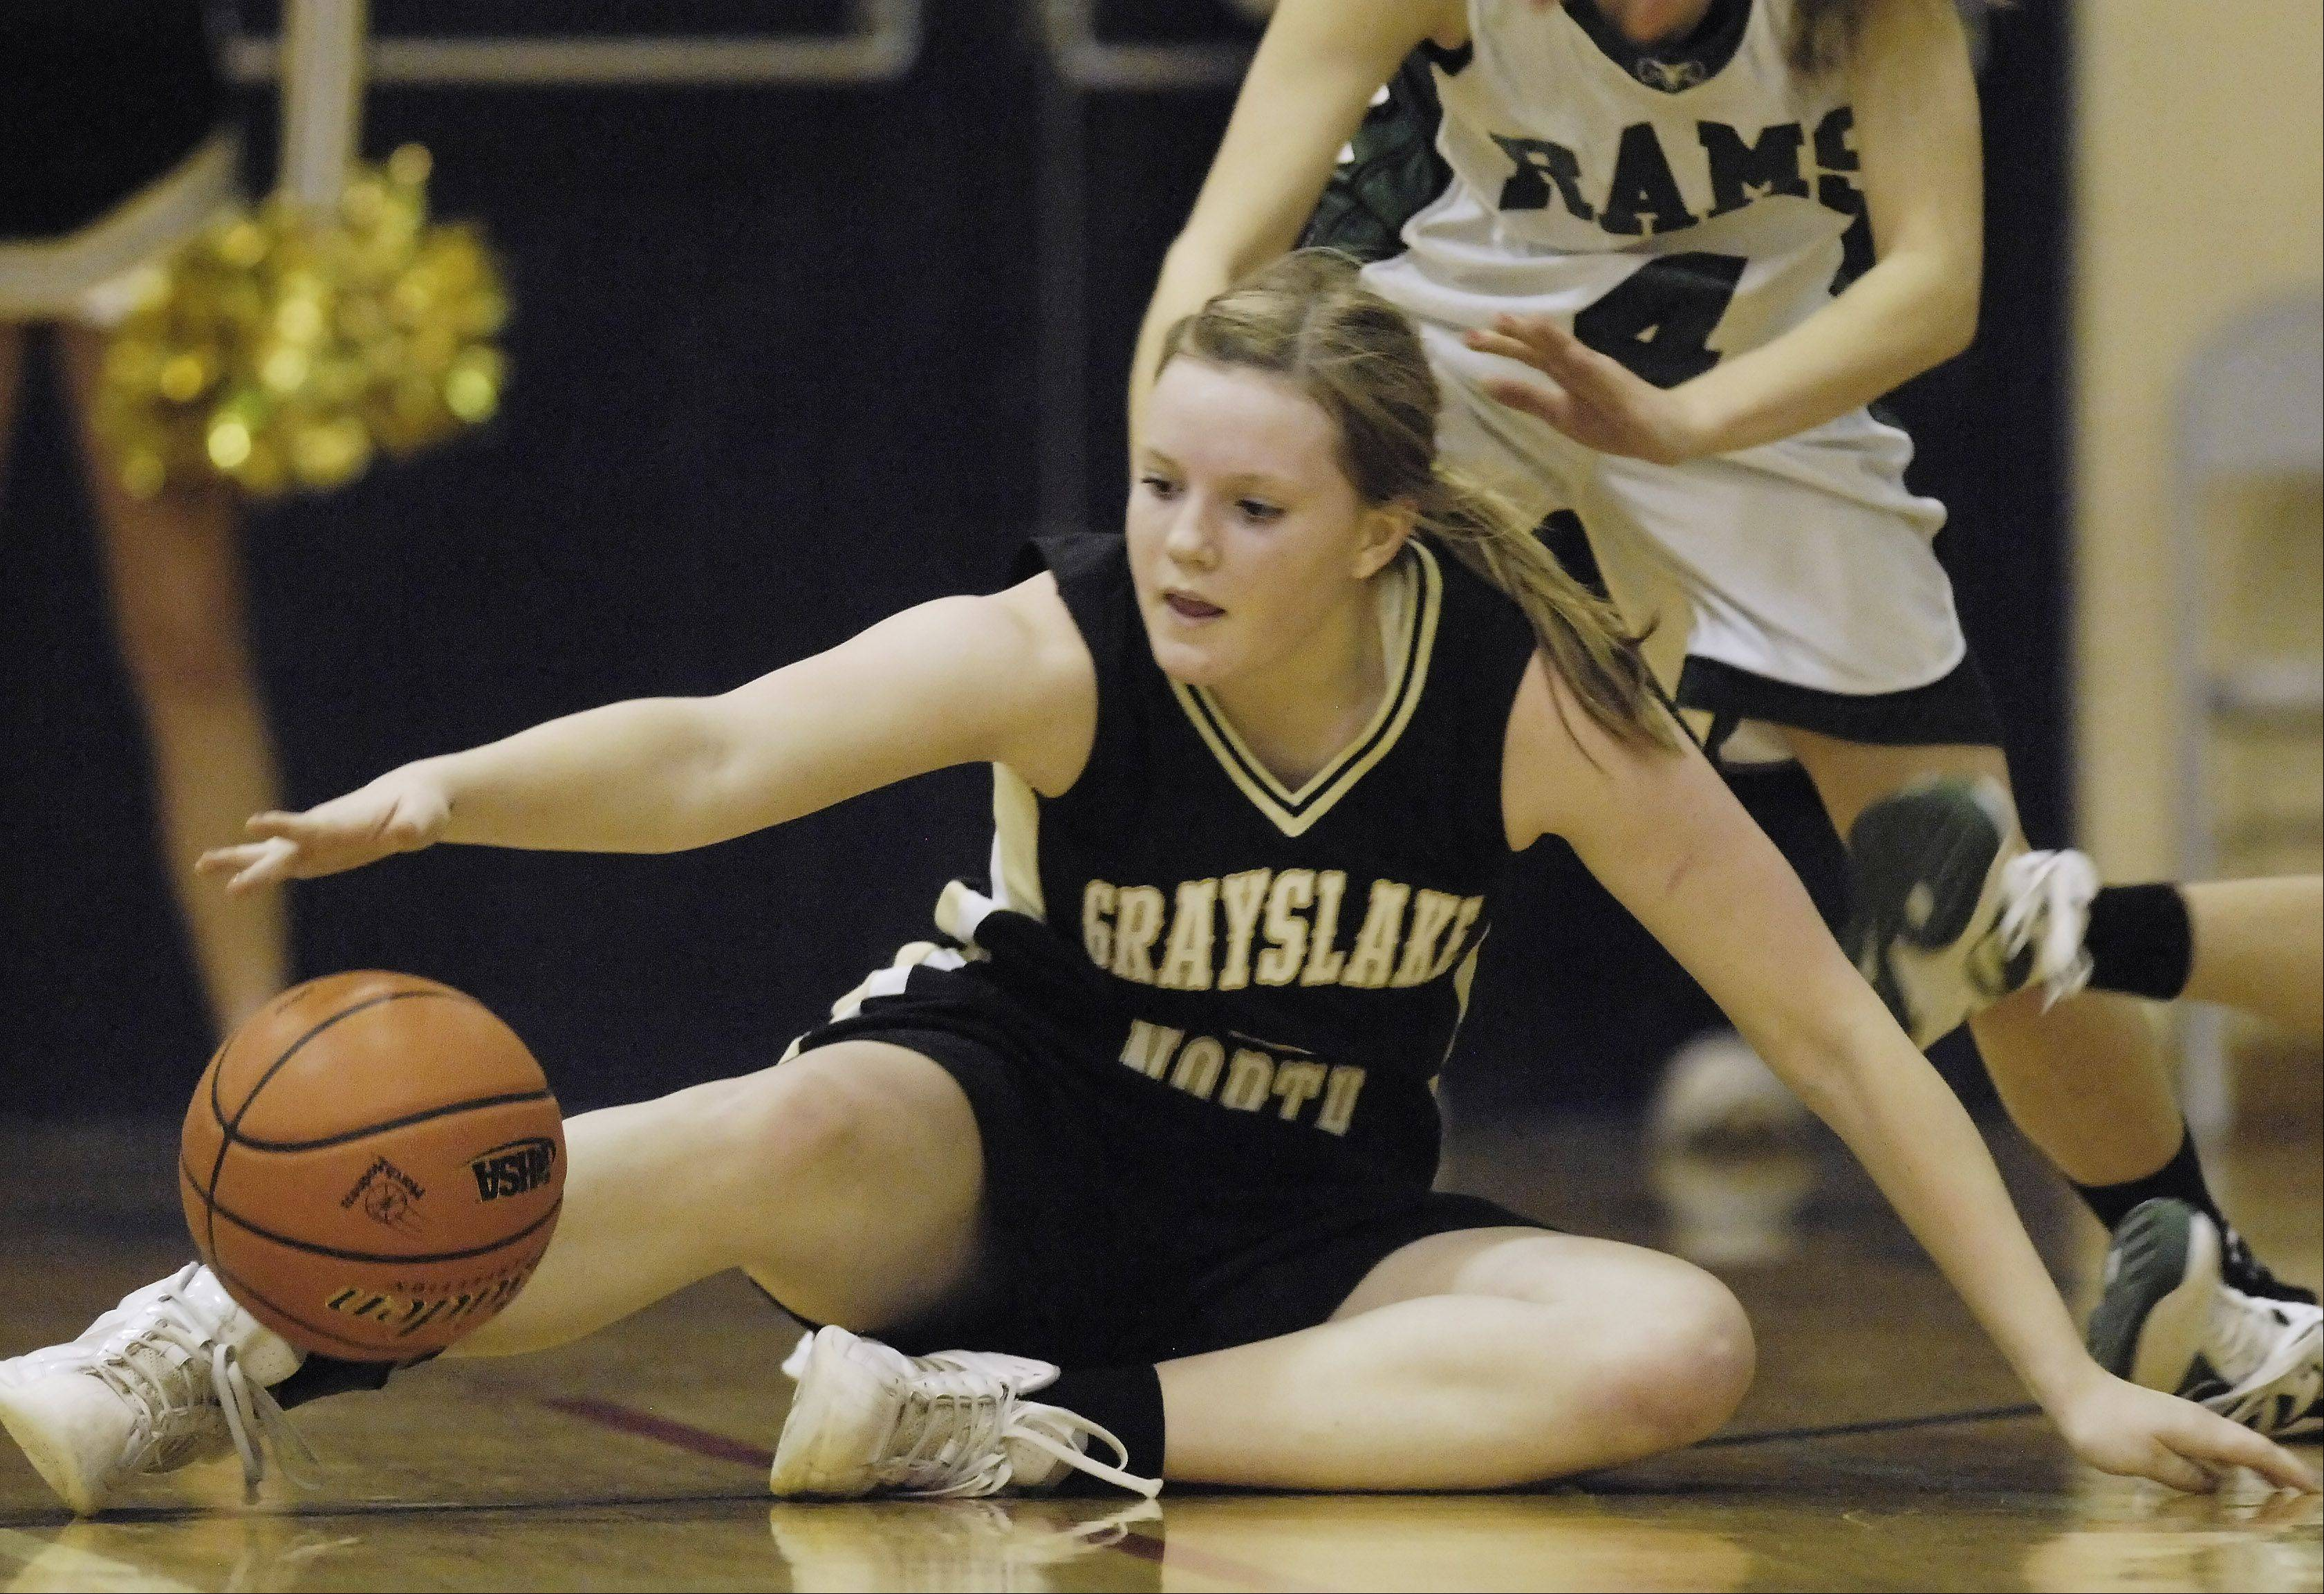 Grayslake North's Katie McGrath grabs for a loose ball during the Class 3A girls basketball sectional semifinal against Grayslake Central Tuesday in Arlington Heights.